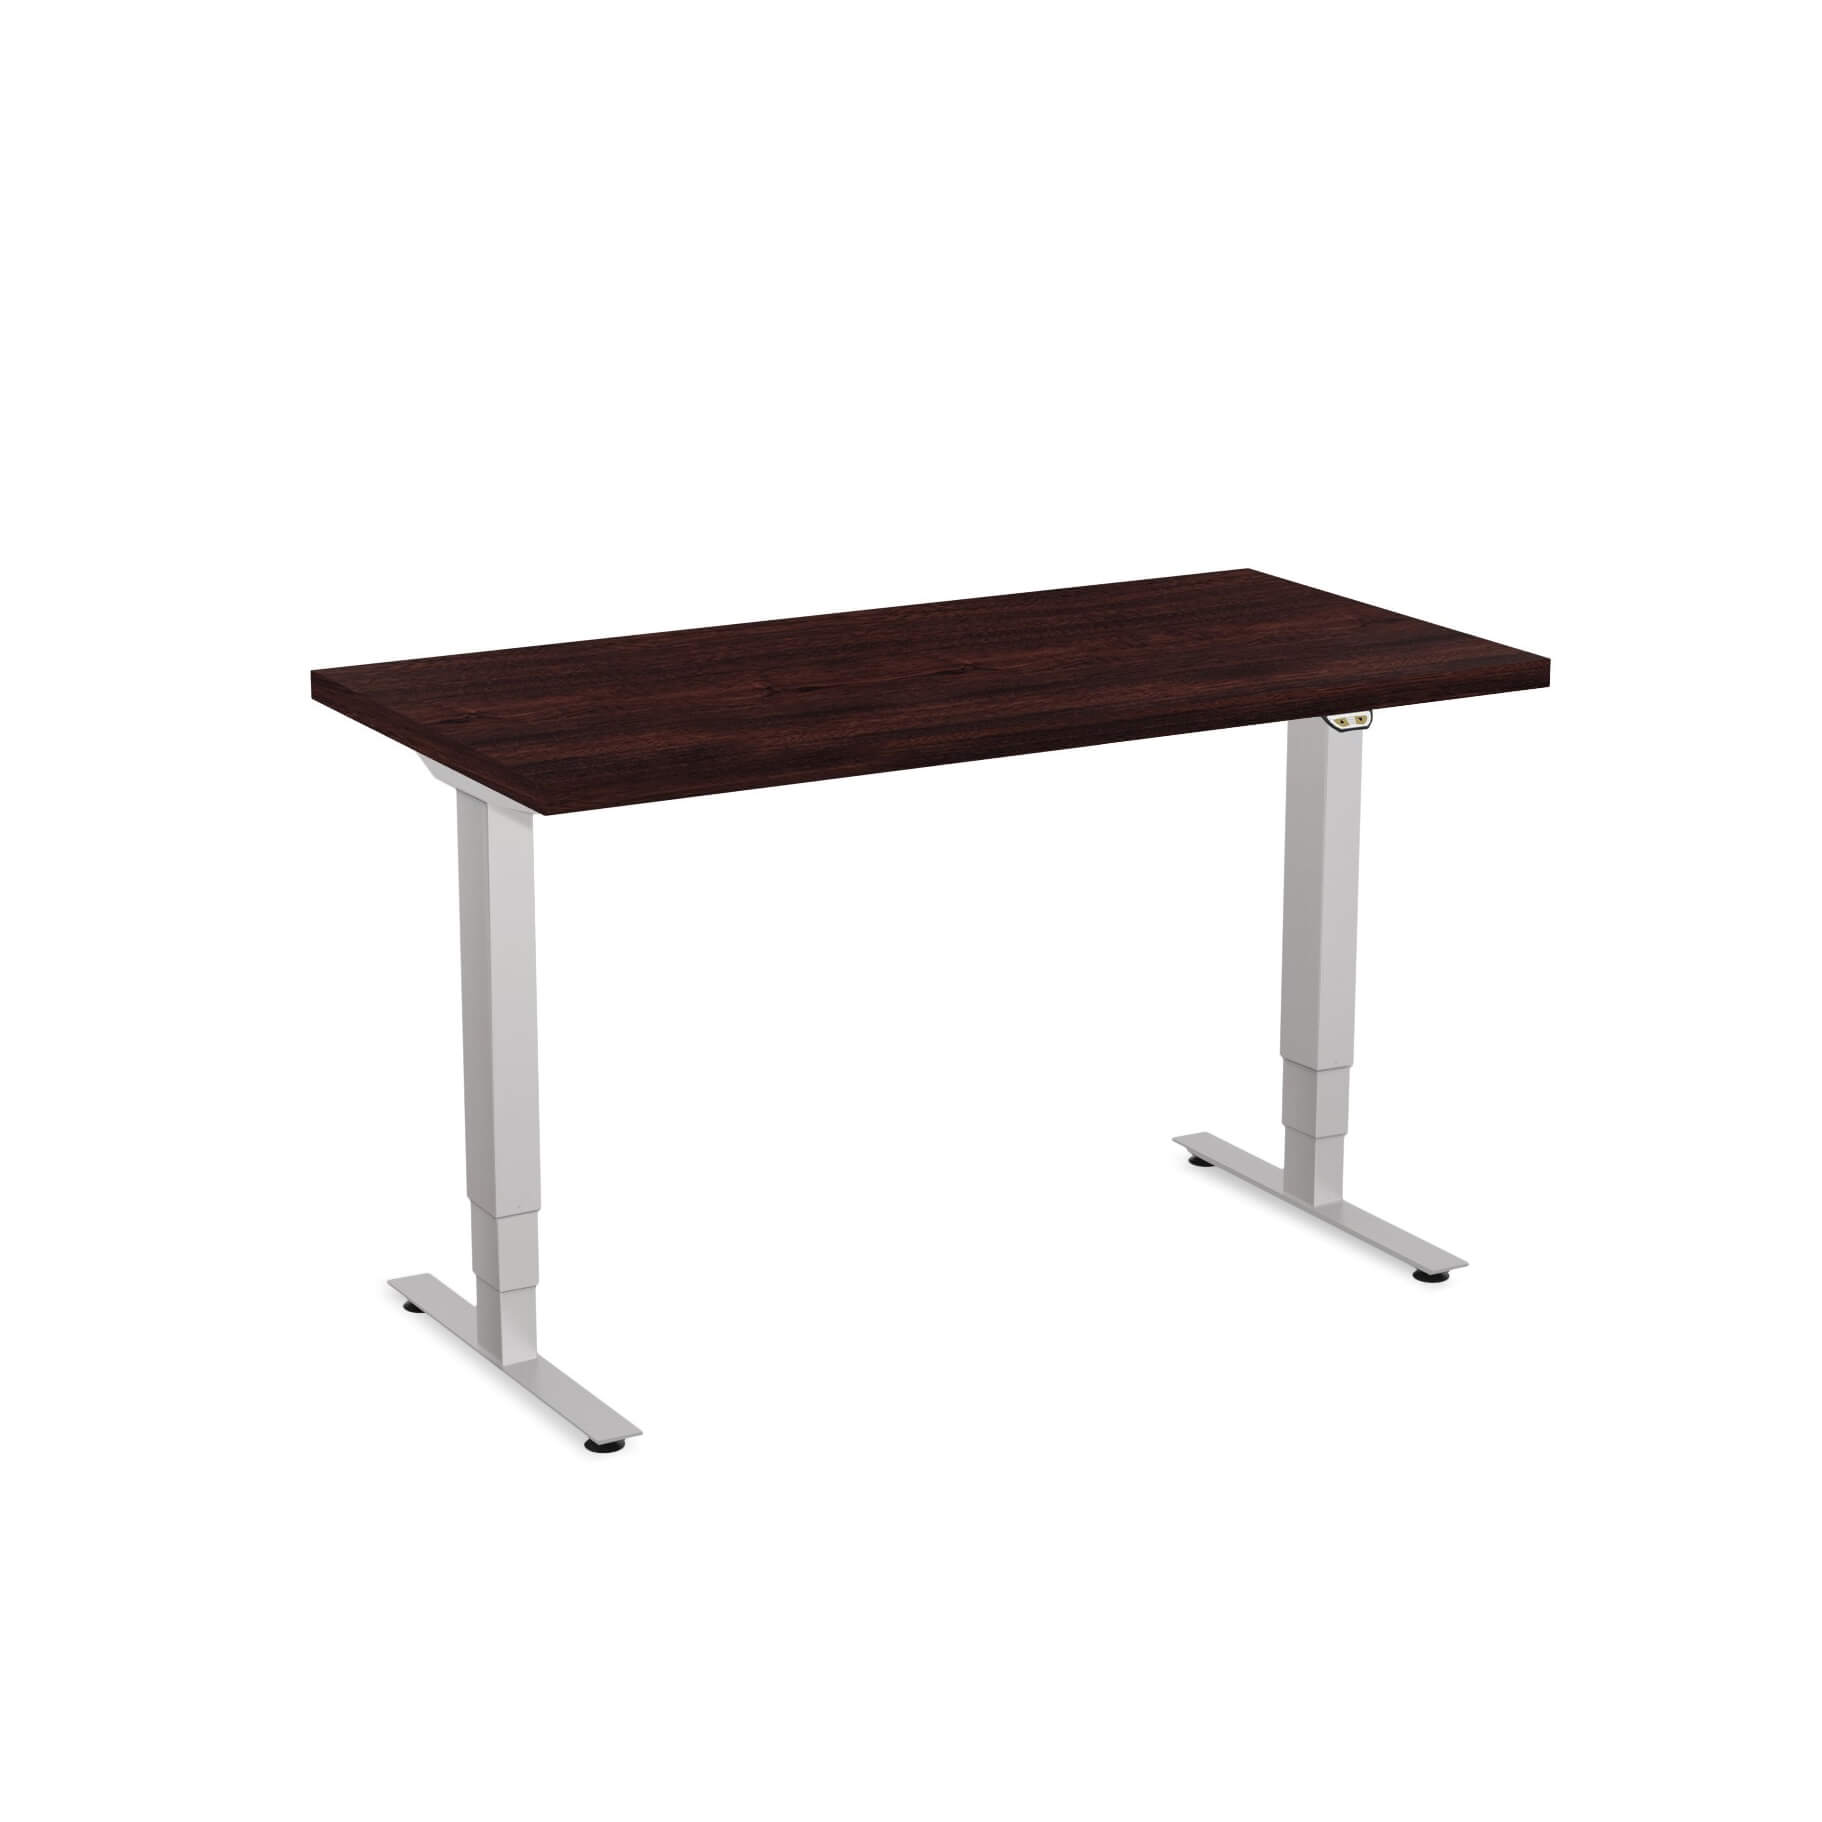 Sit stand desk adjustable CUB 1D PATR 2448 ES EPS 1